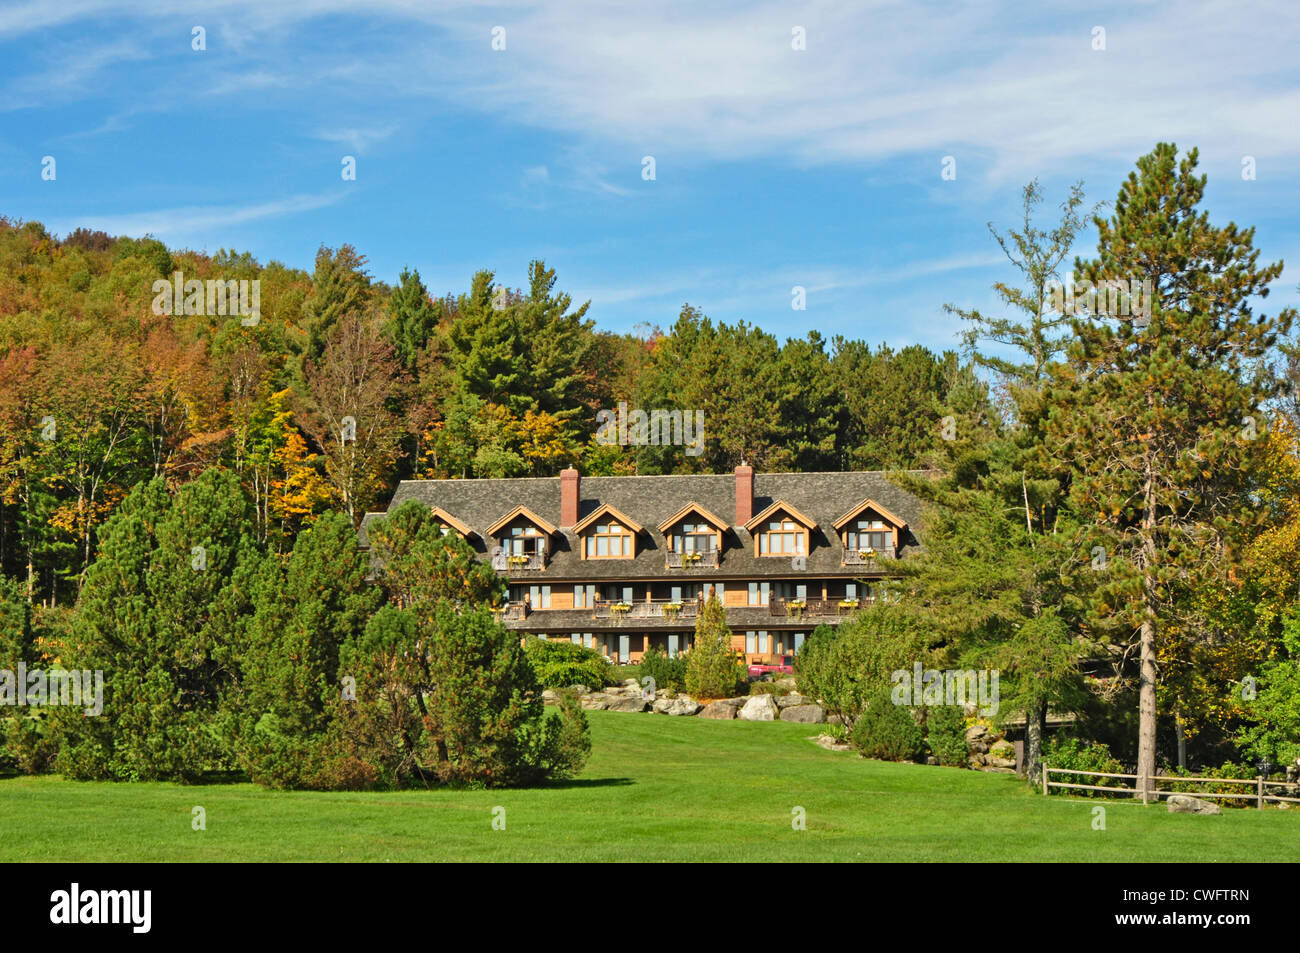 UNITED STATES OF AMERICA, USA, New England, Vermont, Stowe, Von Trapp Family Lodge (as in the Sound of Music family) - Stock Image